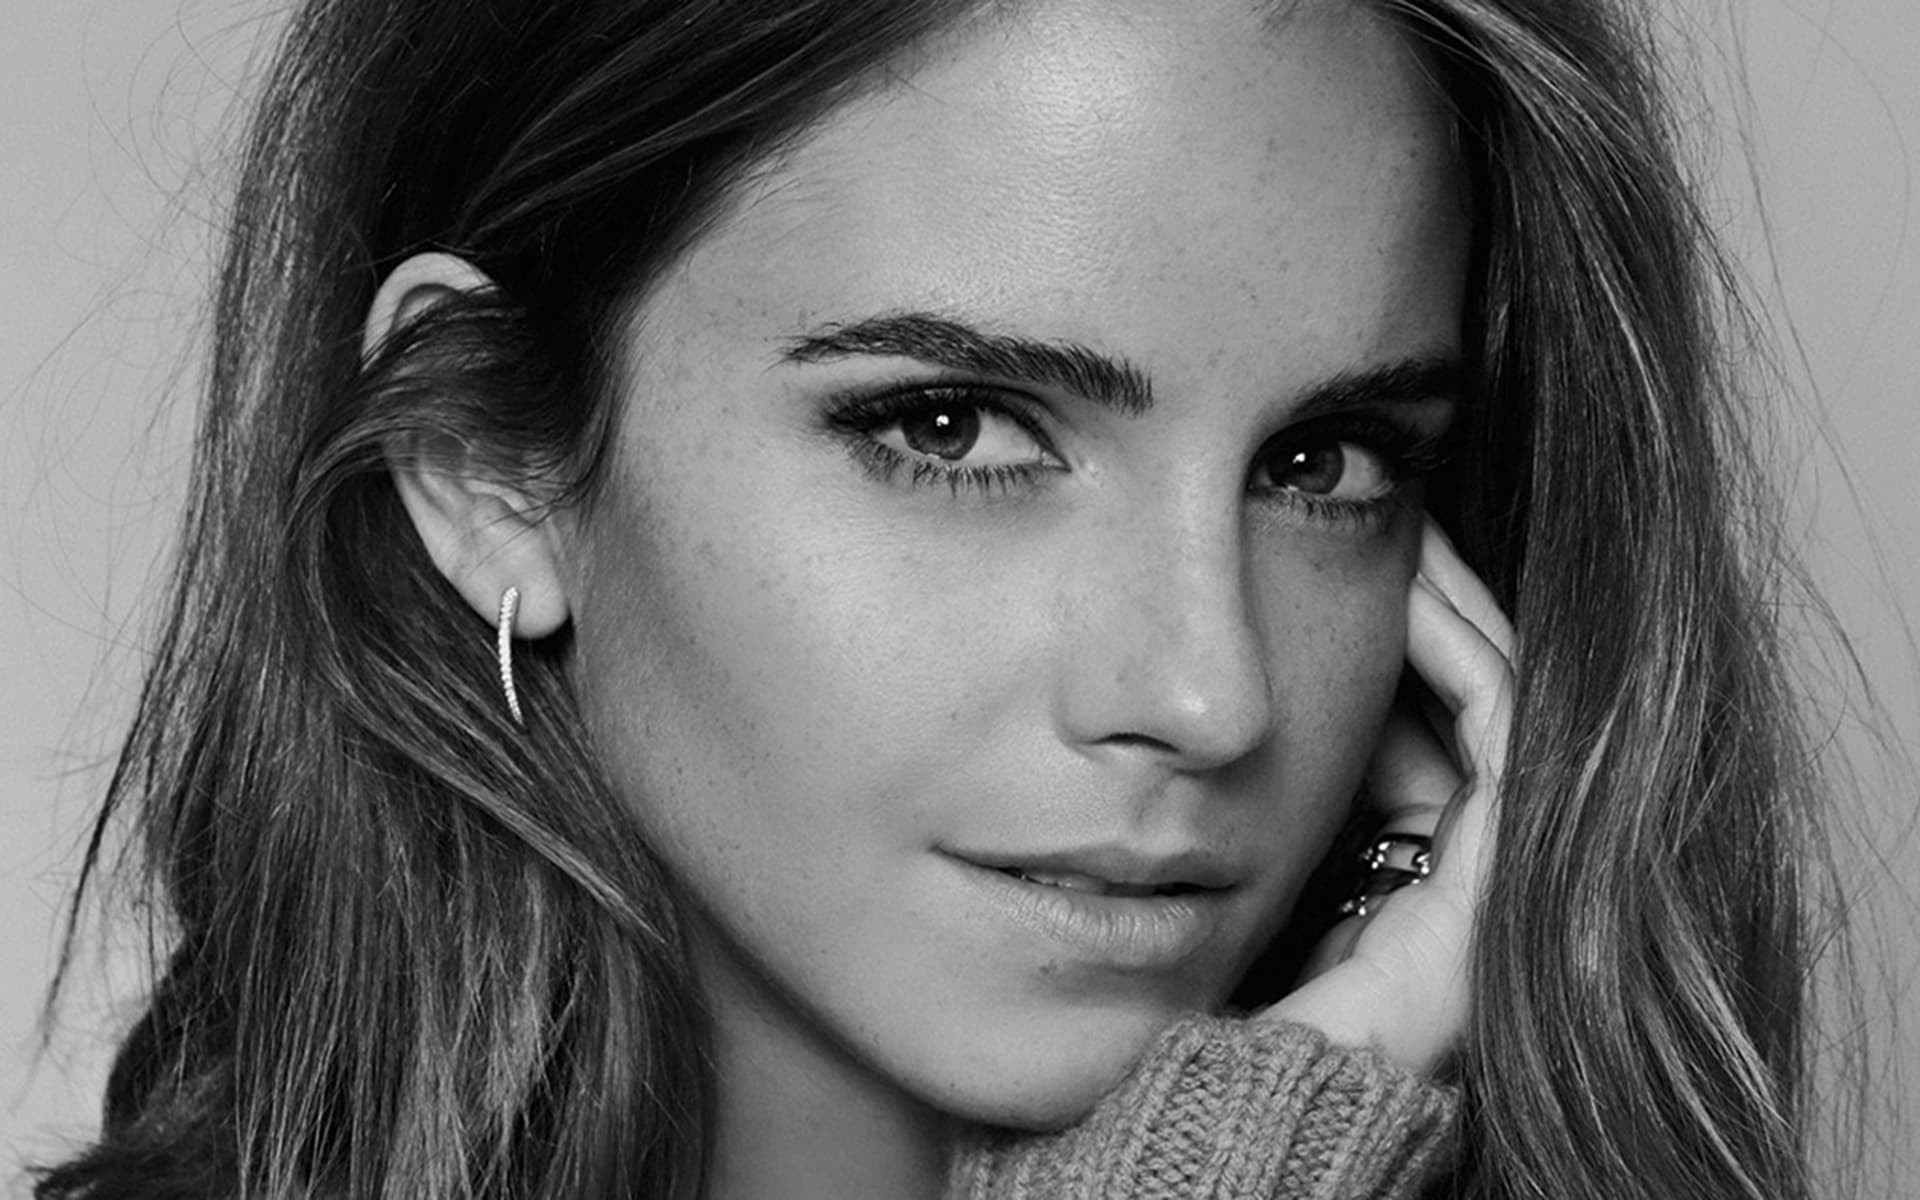 emma watson wallpapers 2018 (65+ images)